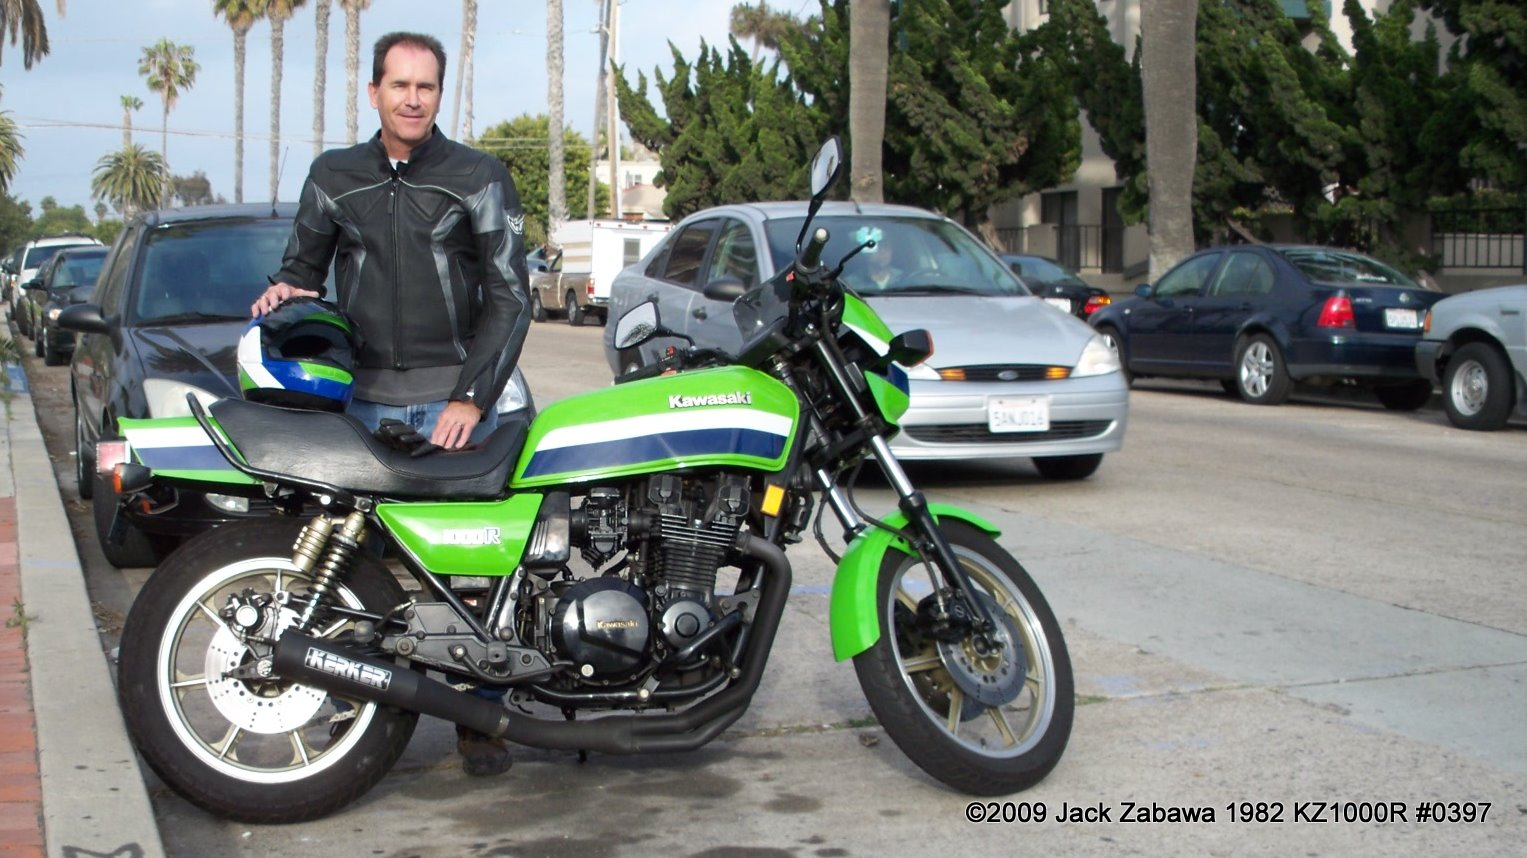 KZ1000R.com Bike of the Month June 09.